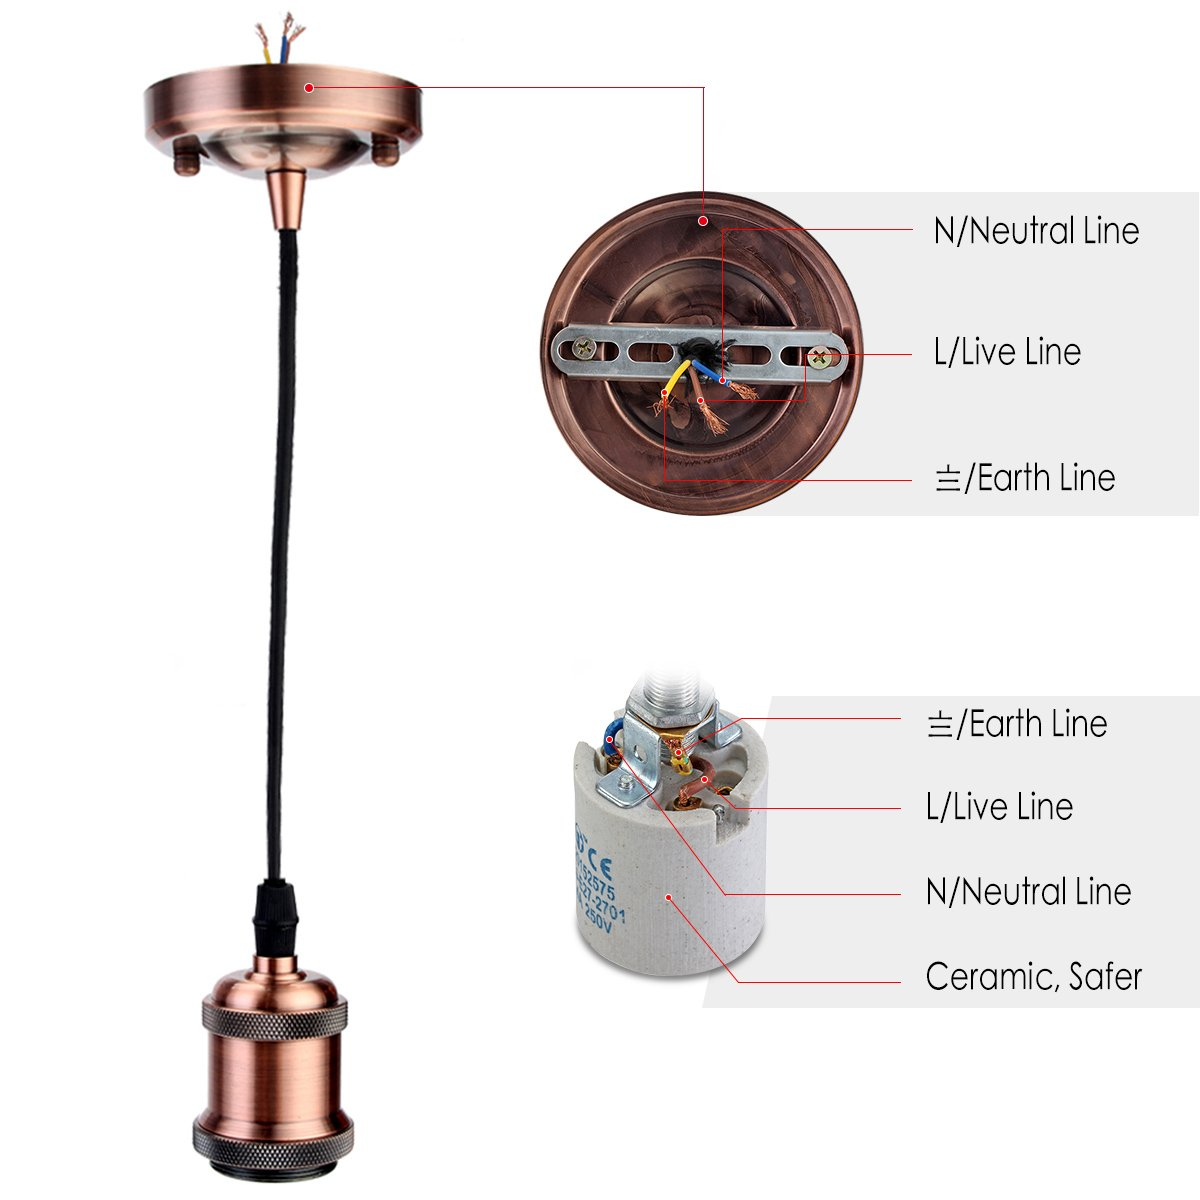 Greensun Led Lighting Vintage 4 Piece E27 Lamp Socket Wiring A Ceiling Light Without Earth Antique Edison Holder Accessory With 135 M 3 Wire Cable For Pendant R1 Ceramic